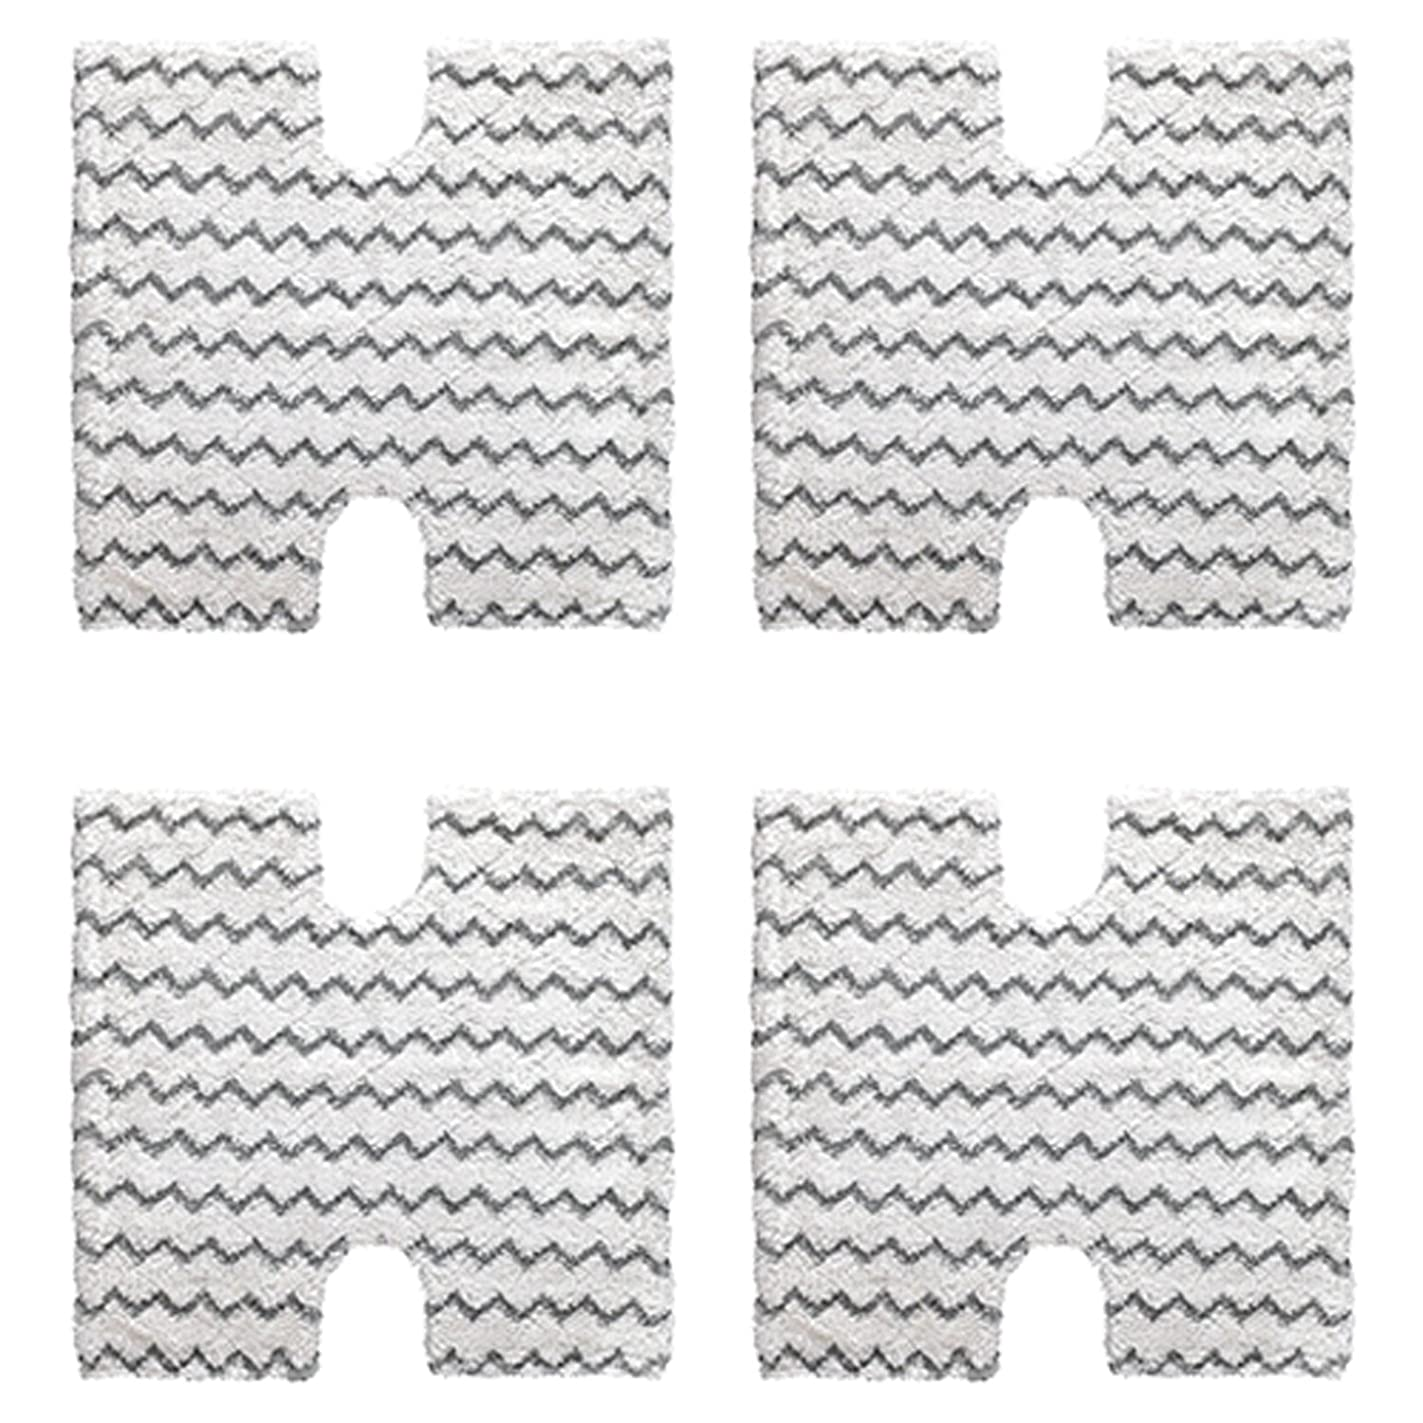 Amyehouse 4-Pack Shark Touch Free Dirt Grip Washable Microfiber Pad Replacememt for Shark Lift-Away & Genius Steam Mop S3973 S3973D S5002 S5003 S6001 S6002 S6003 Part # XTP184 & P184WQ